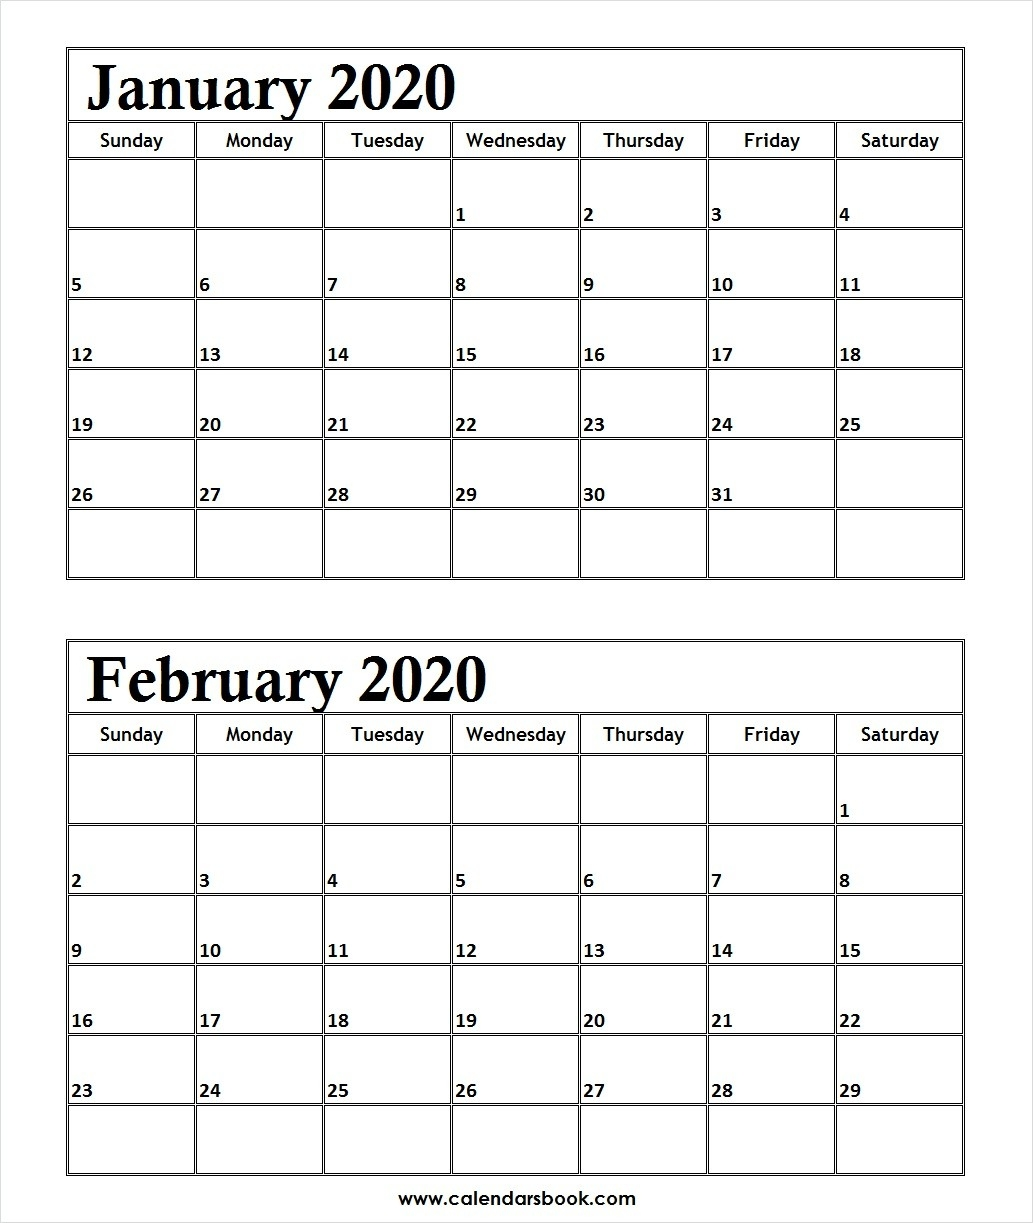 Print January February 2020 Calendar Template | 2 Month Calendar-January February 2020 Calendar